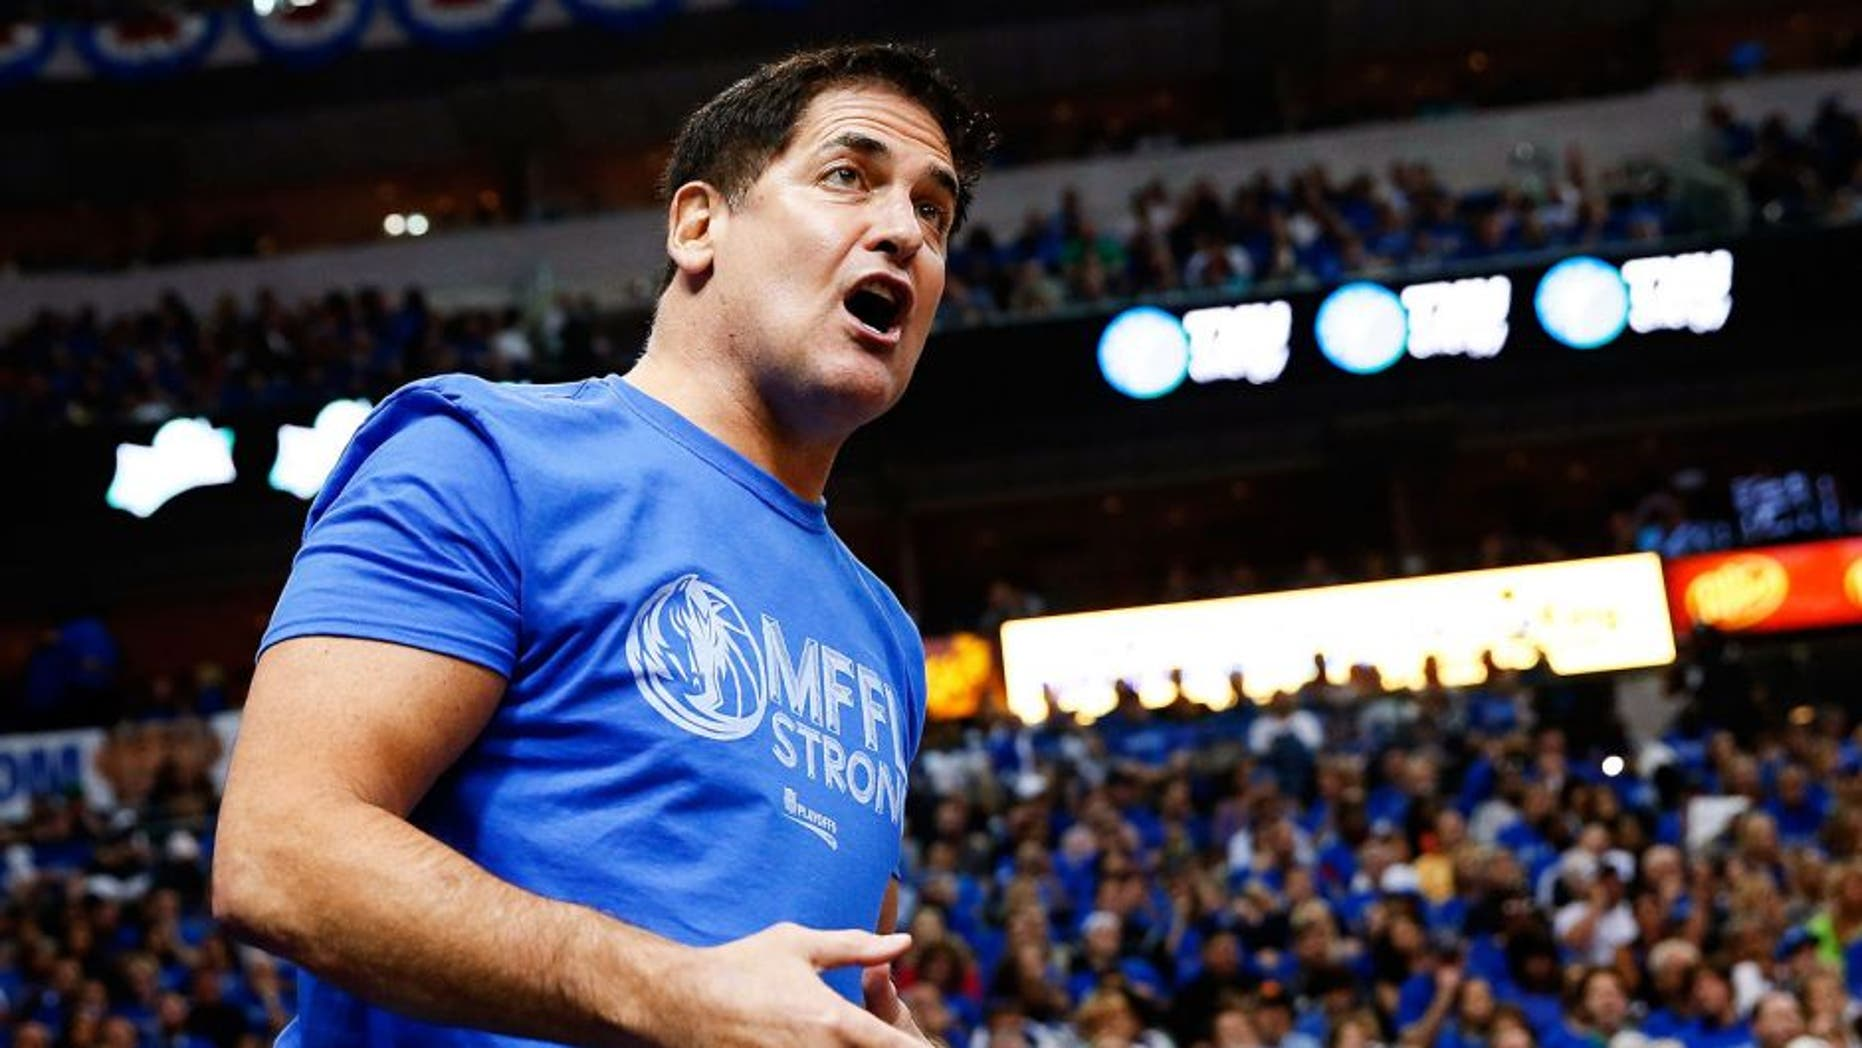 Apr 26, 2014; Dallas, TX, USA; Dallas Mavericks owner Mark Cuban reacts during the game against the San Antonio Spurs in game three of the first round of the 2014 NBA Playoffs at American Airlines Center. Dallas won 109-108. Mandatory Credit: Kevin Jairaj-USA TODAY Sports